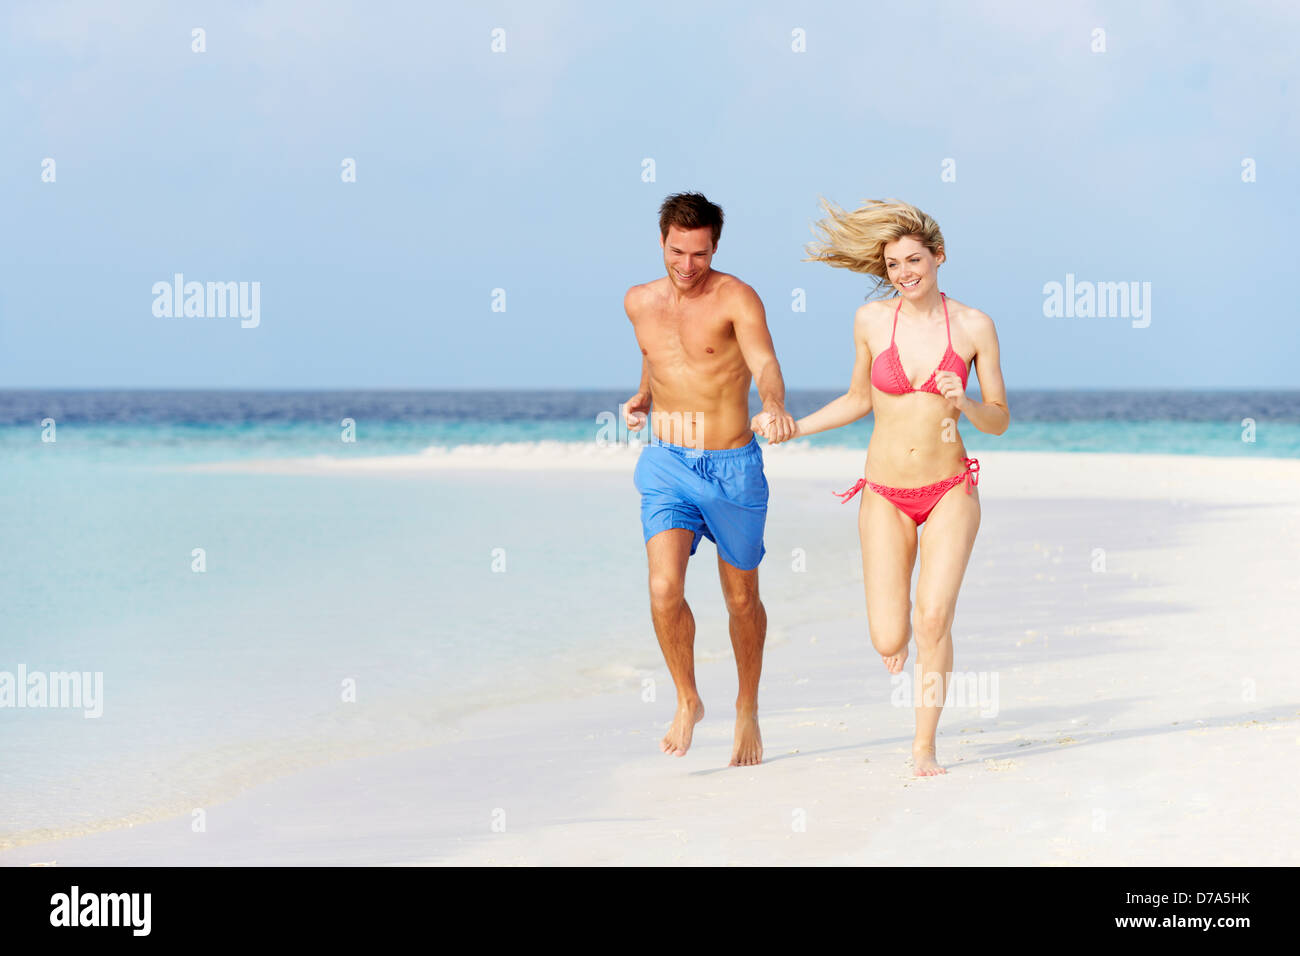 Romantic Couple Running On Beautiful Tropical Beach - Stock Image